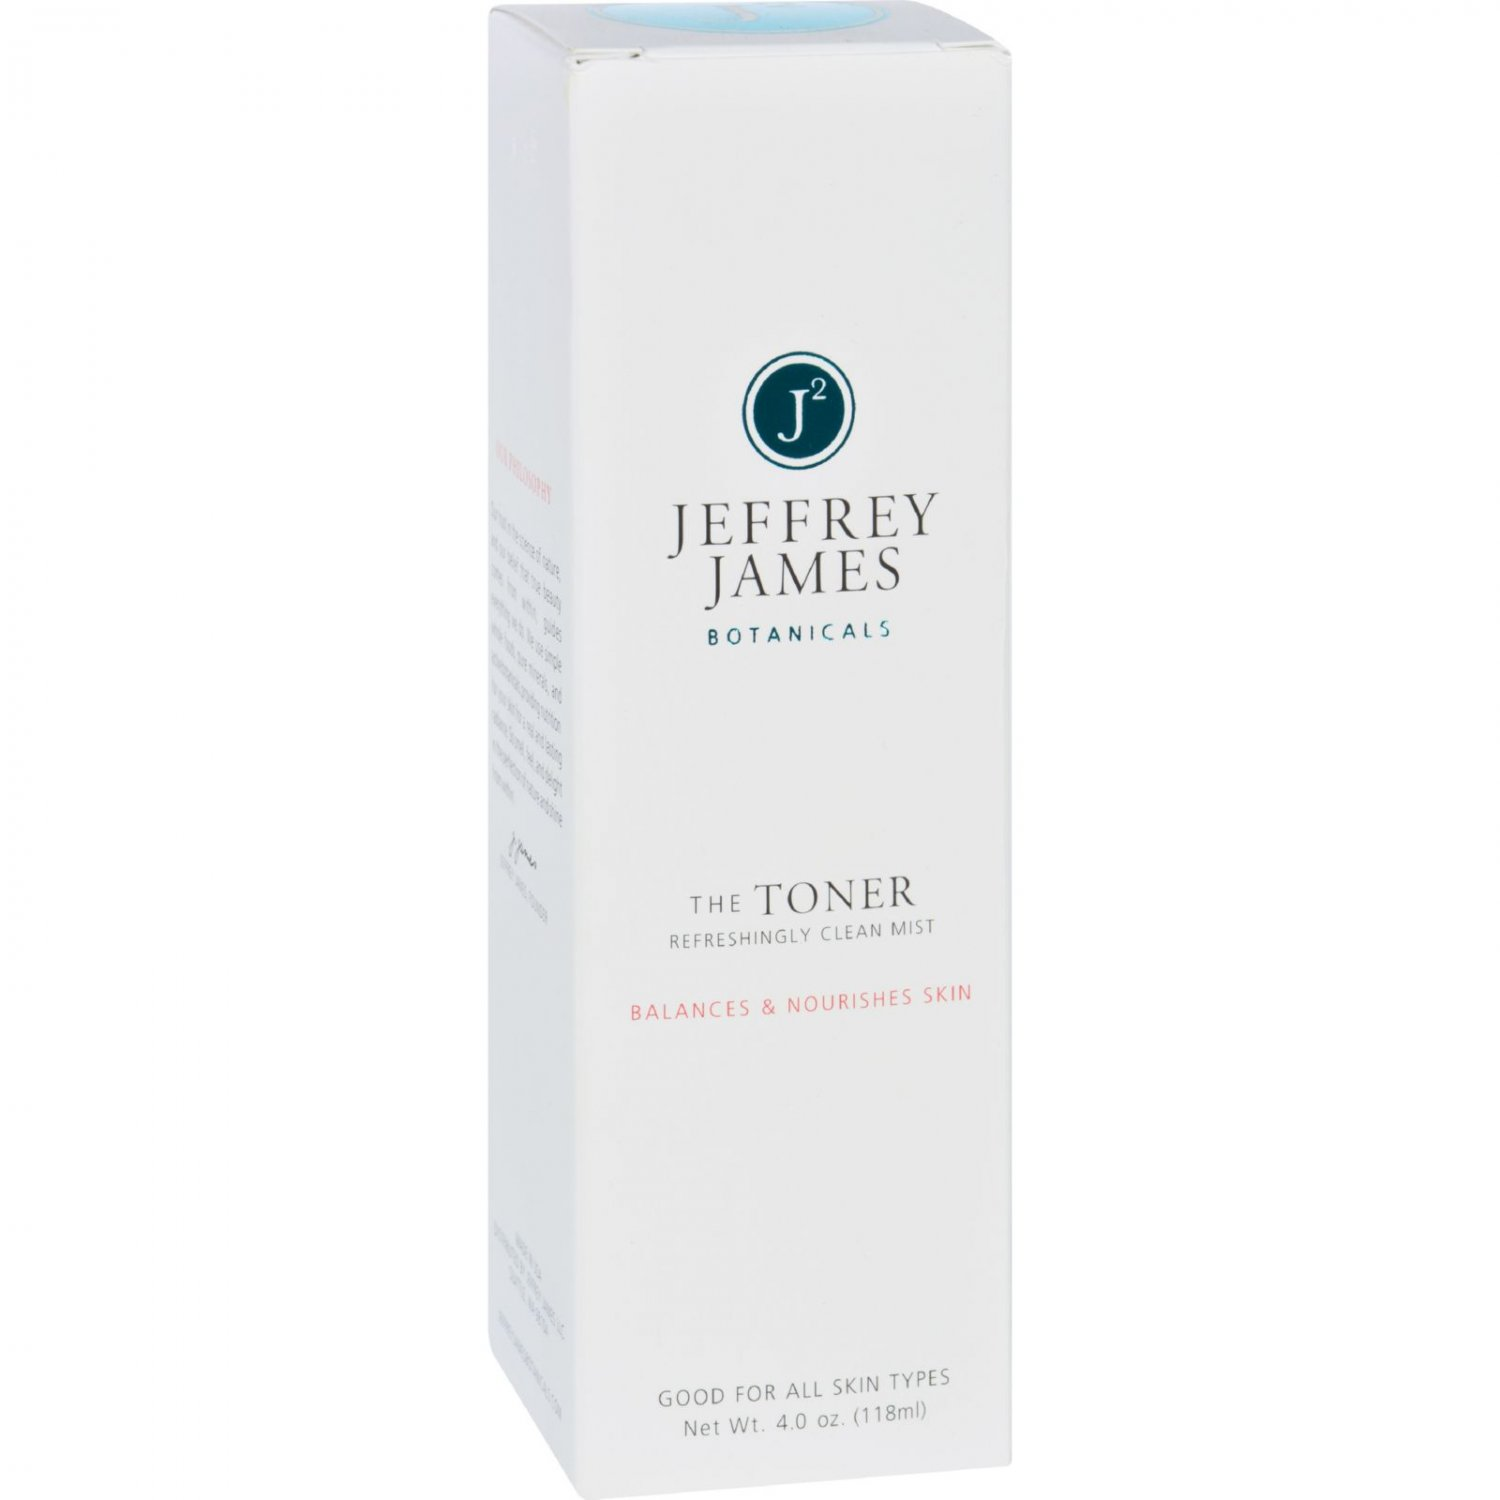 Jeffrey James Botanicals Facial Toner - The Toner - Refreshingly Clean Mist - 4 oz